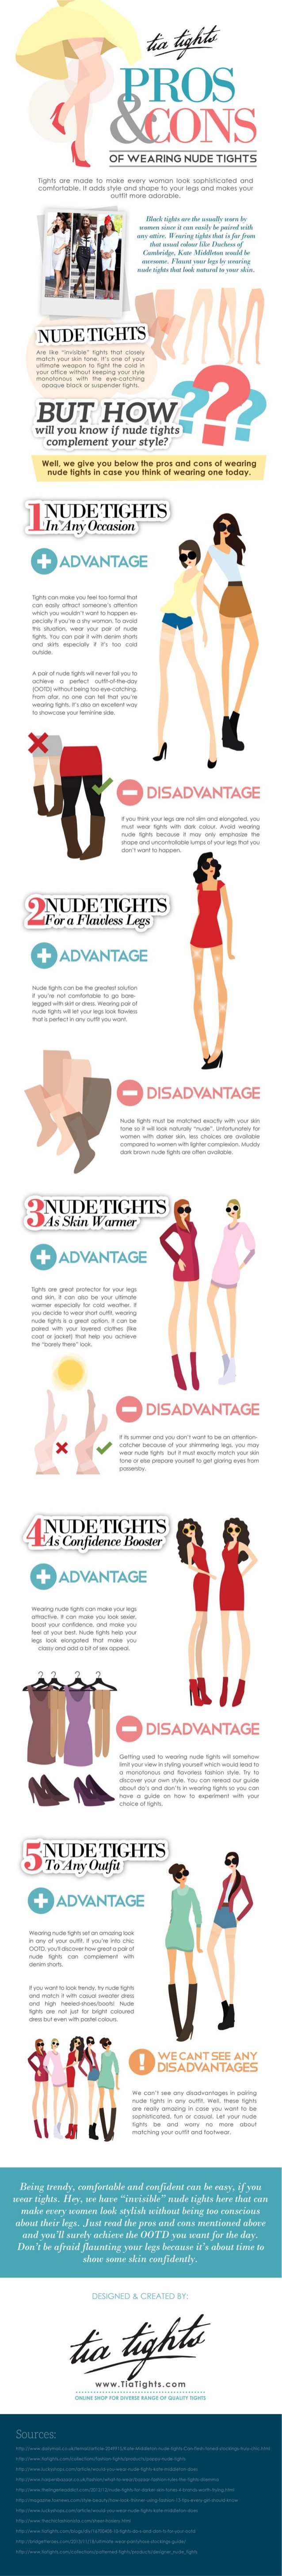 The Pros and Cons of Wearing Nude Tights